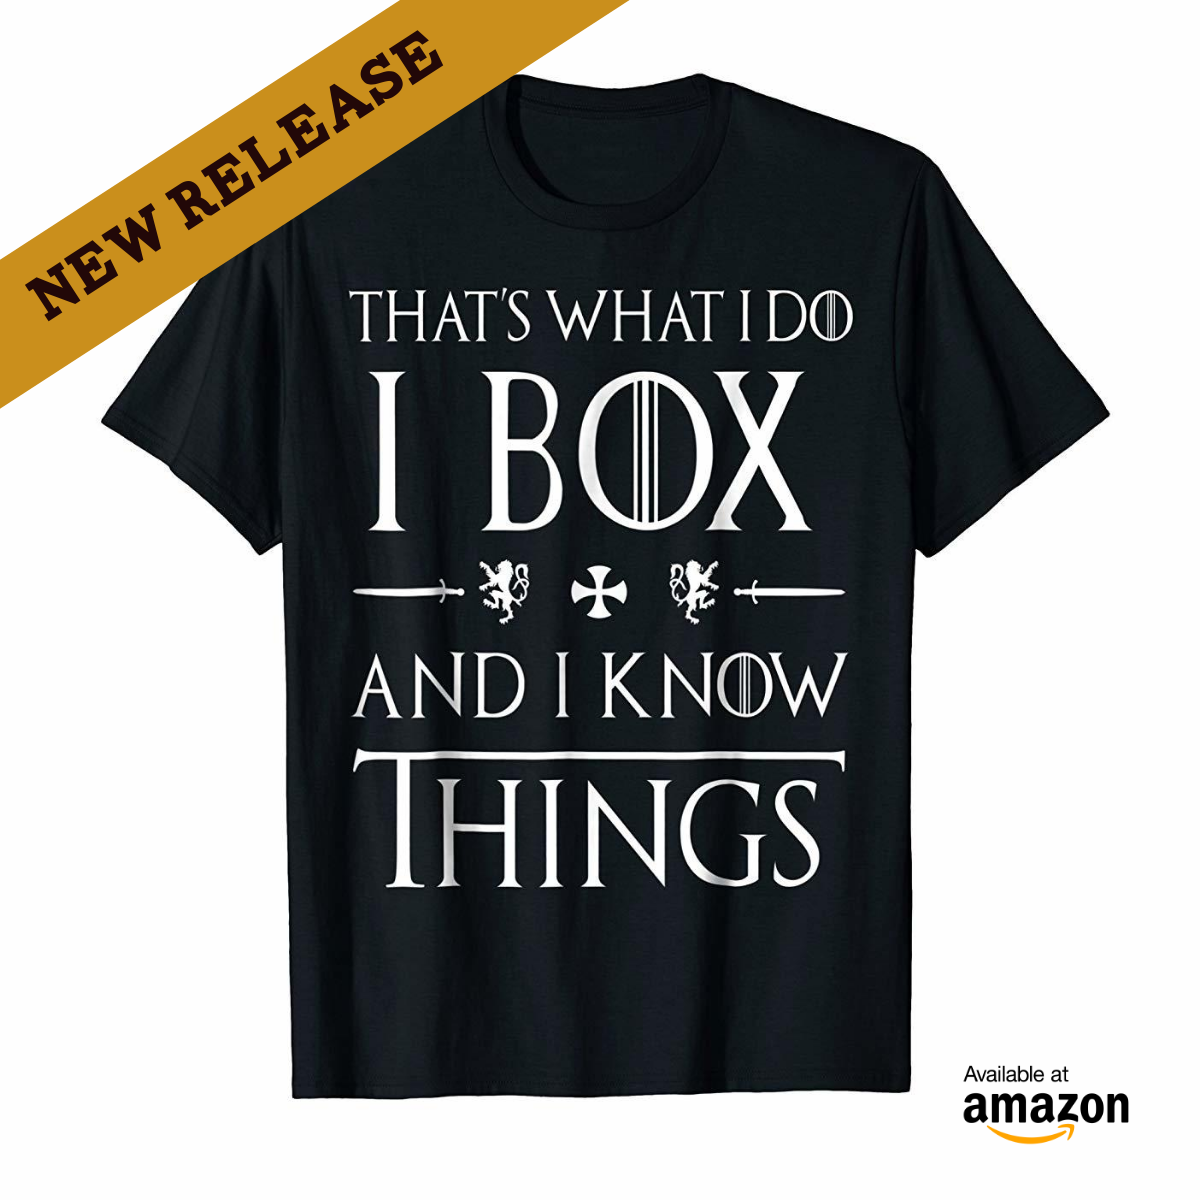 You Can T Play Boxing Shirt: Funny Boxing T Shirts Gifts. Love To Box Cute Tee, Sports